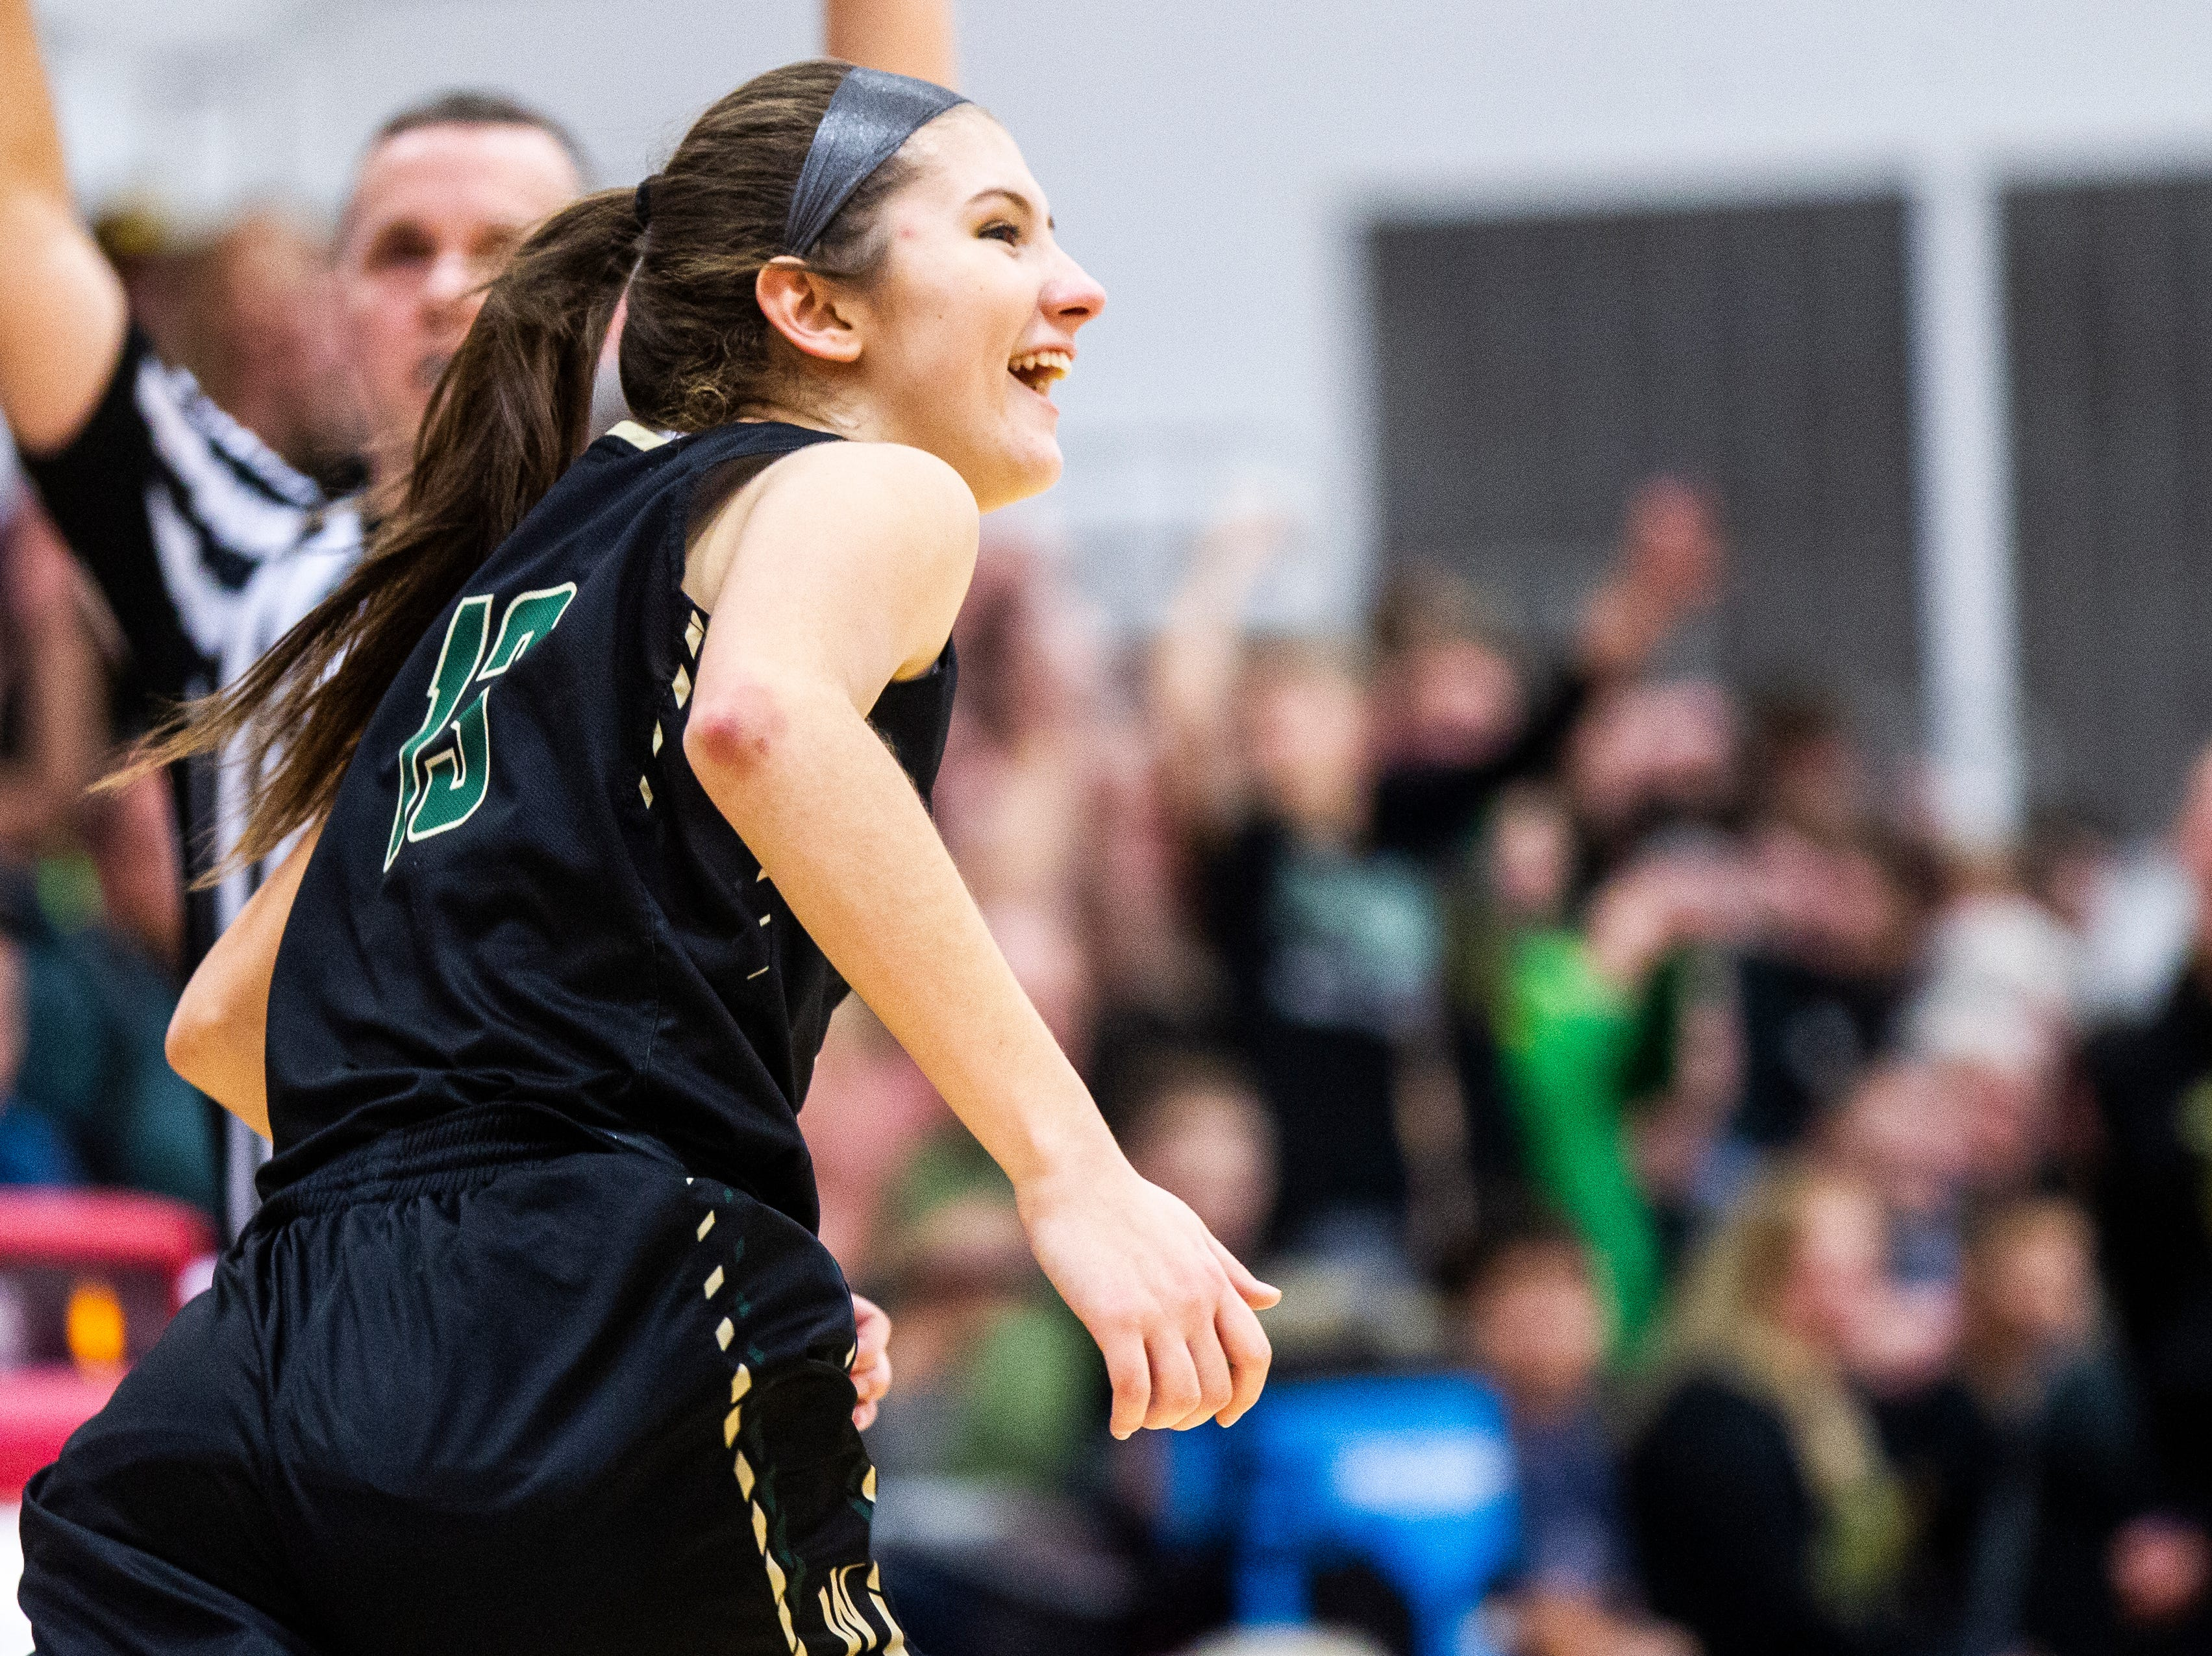 Iowa City West's Grace Schneider (13) celebrates after making a 3-point basket during a Class 5A girls basketball game on Friday, Dec. 7, 2018, at City High School in Iowa City.